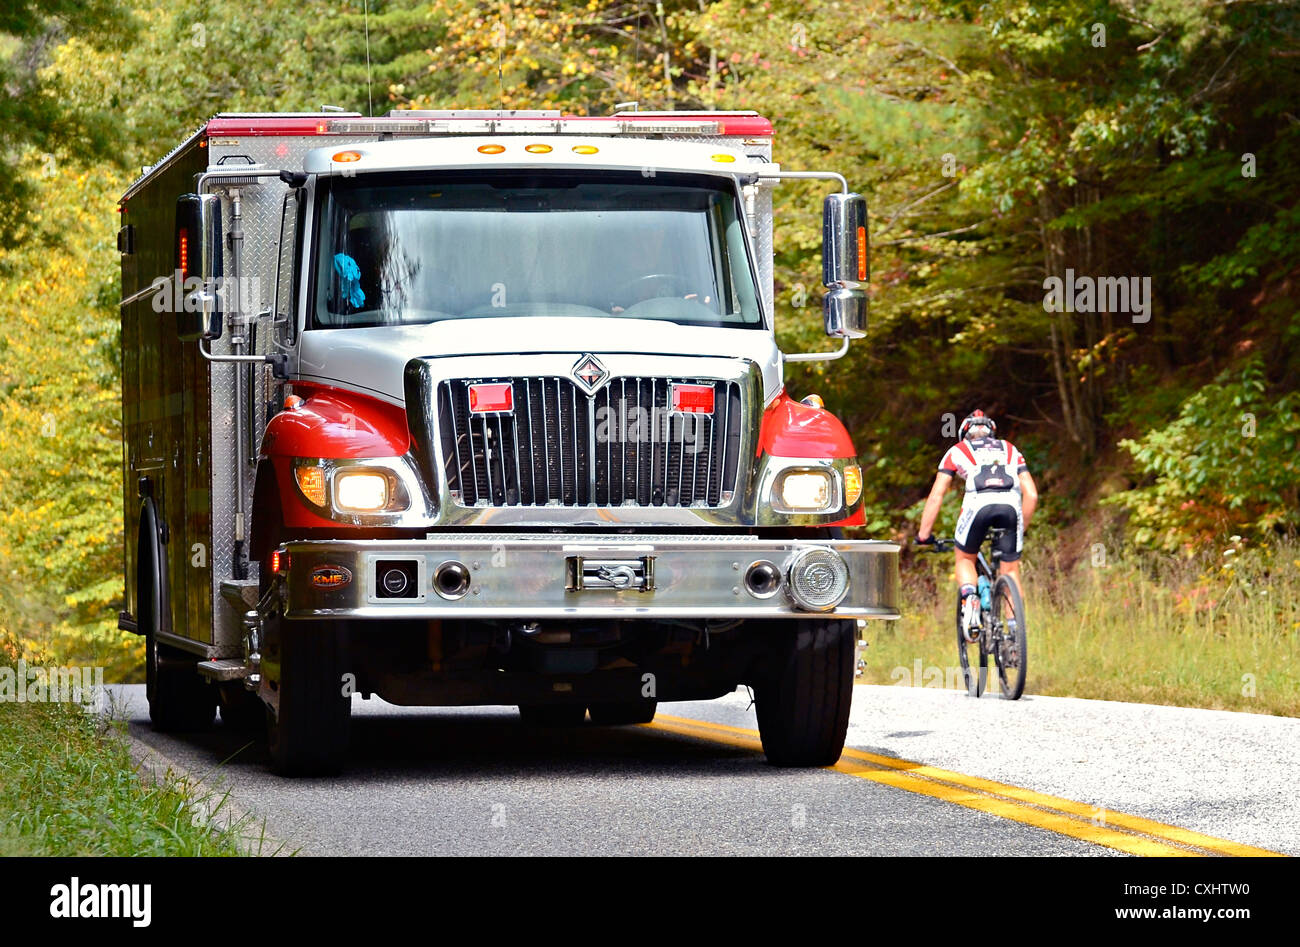 An EMT emergency firetruck on the way to help after getting a distress call. - Stock Image